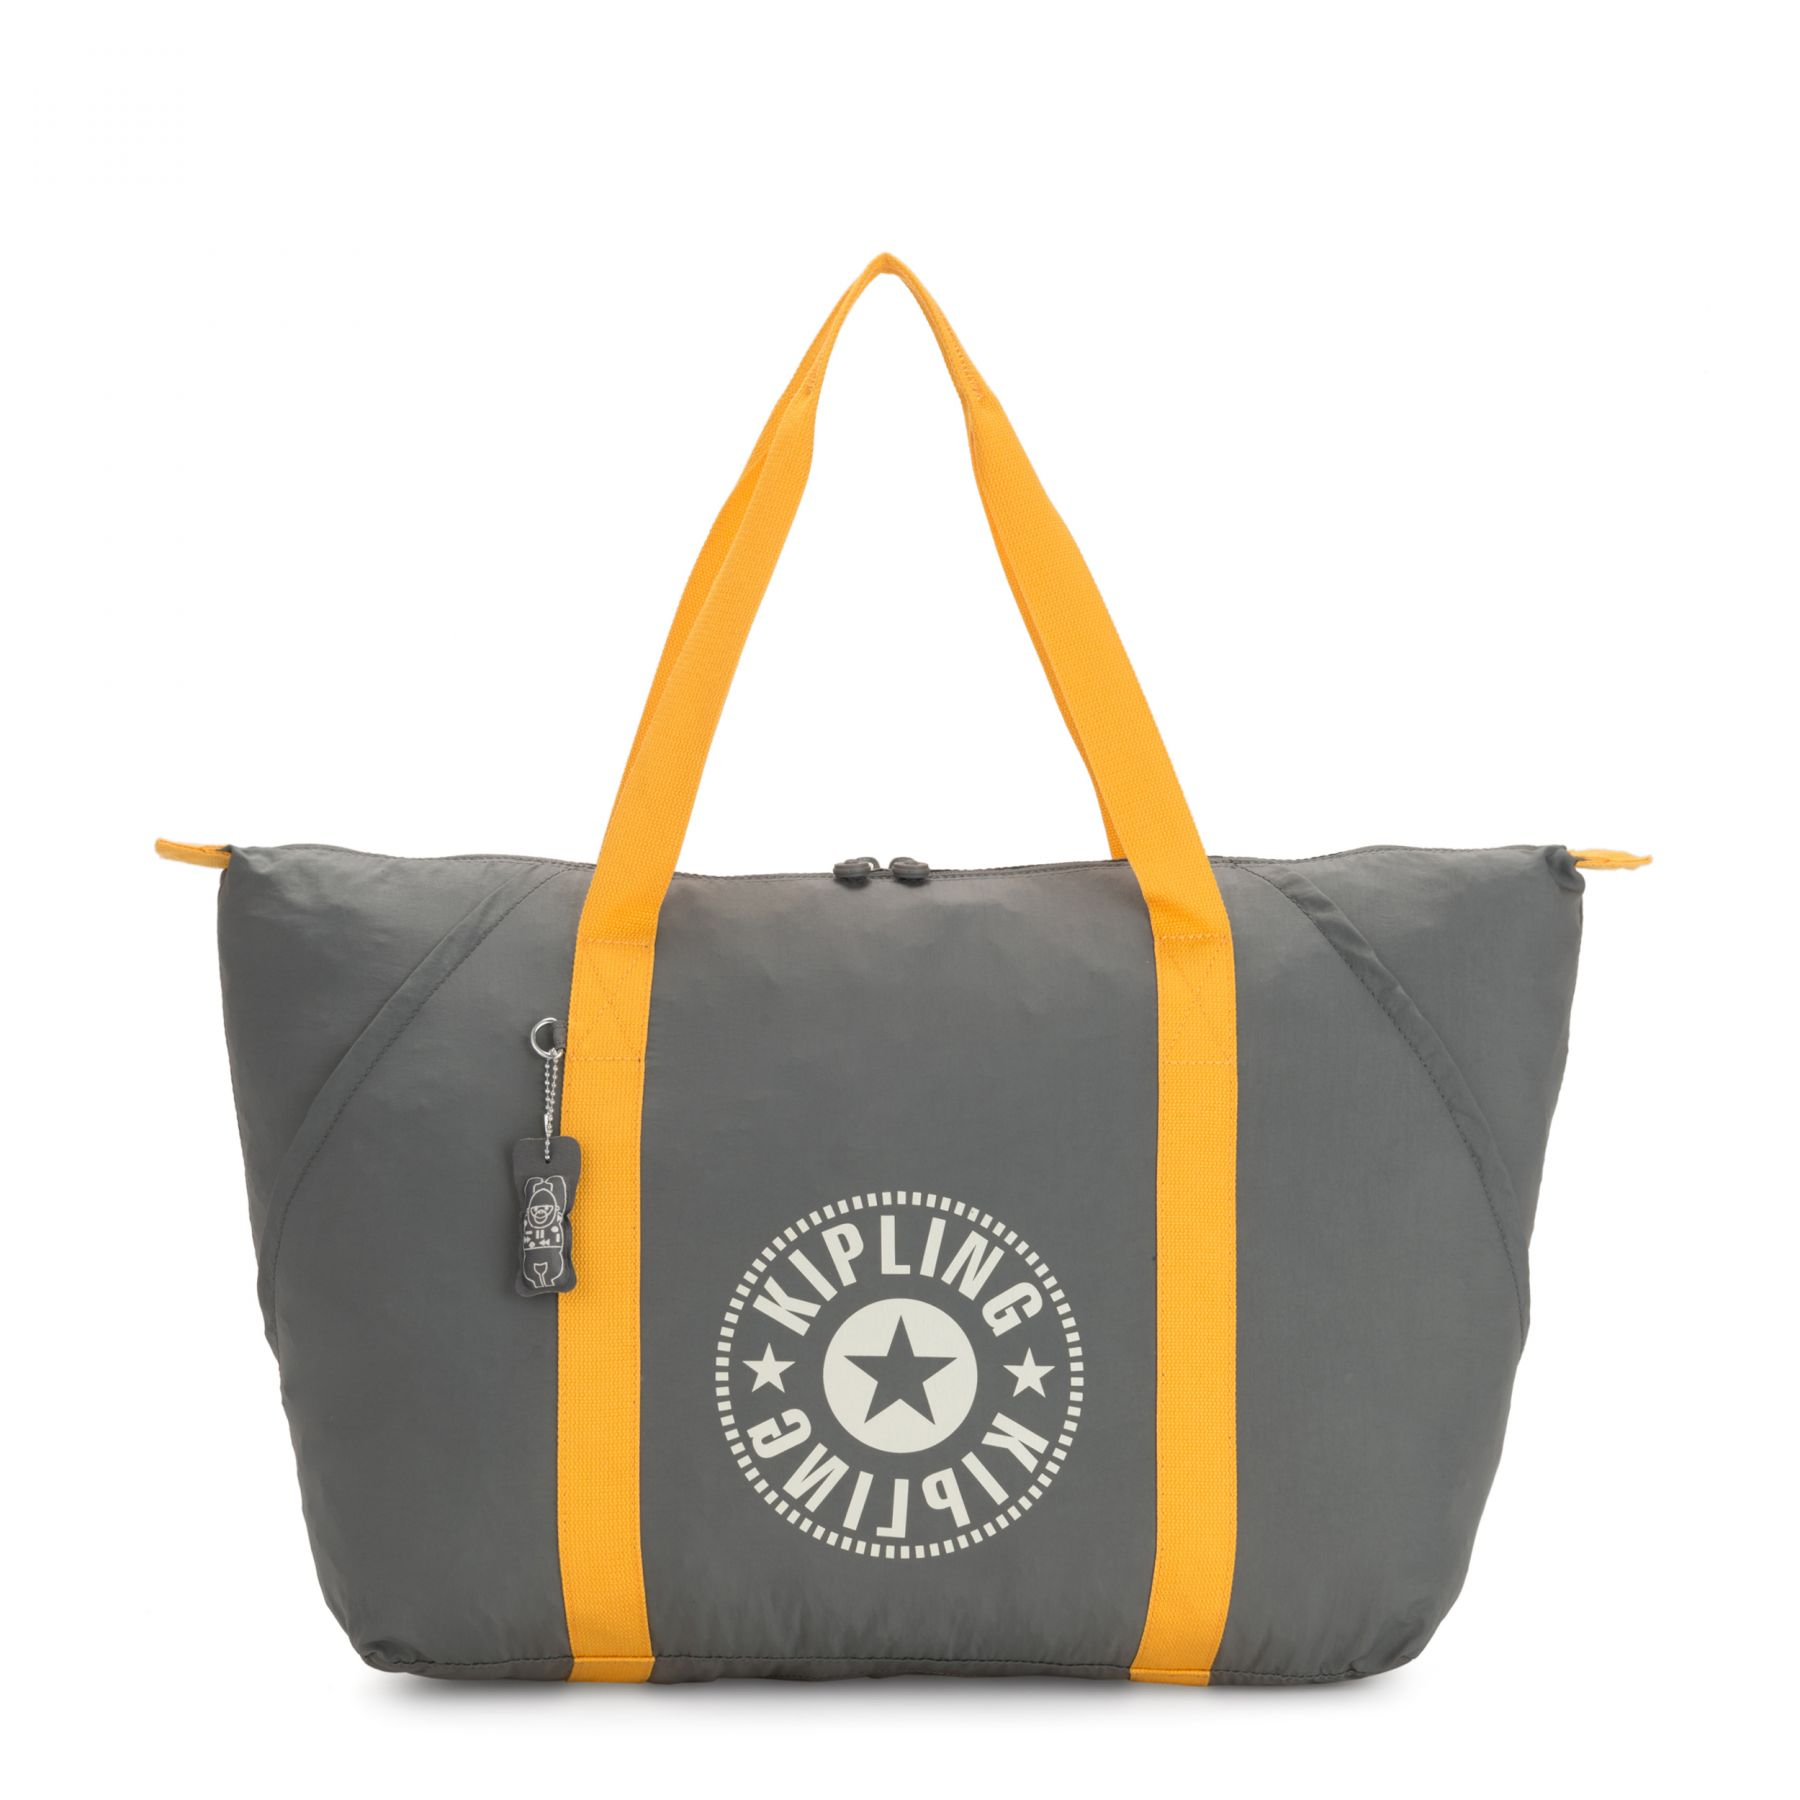 TOTEPACK BAGS by Kipling - Front view